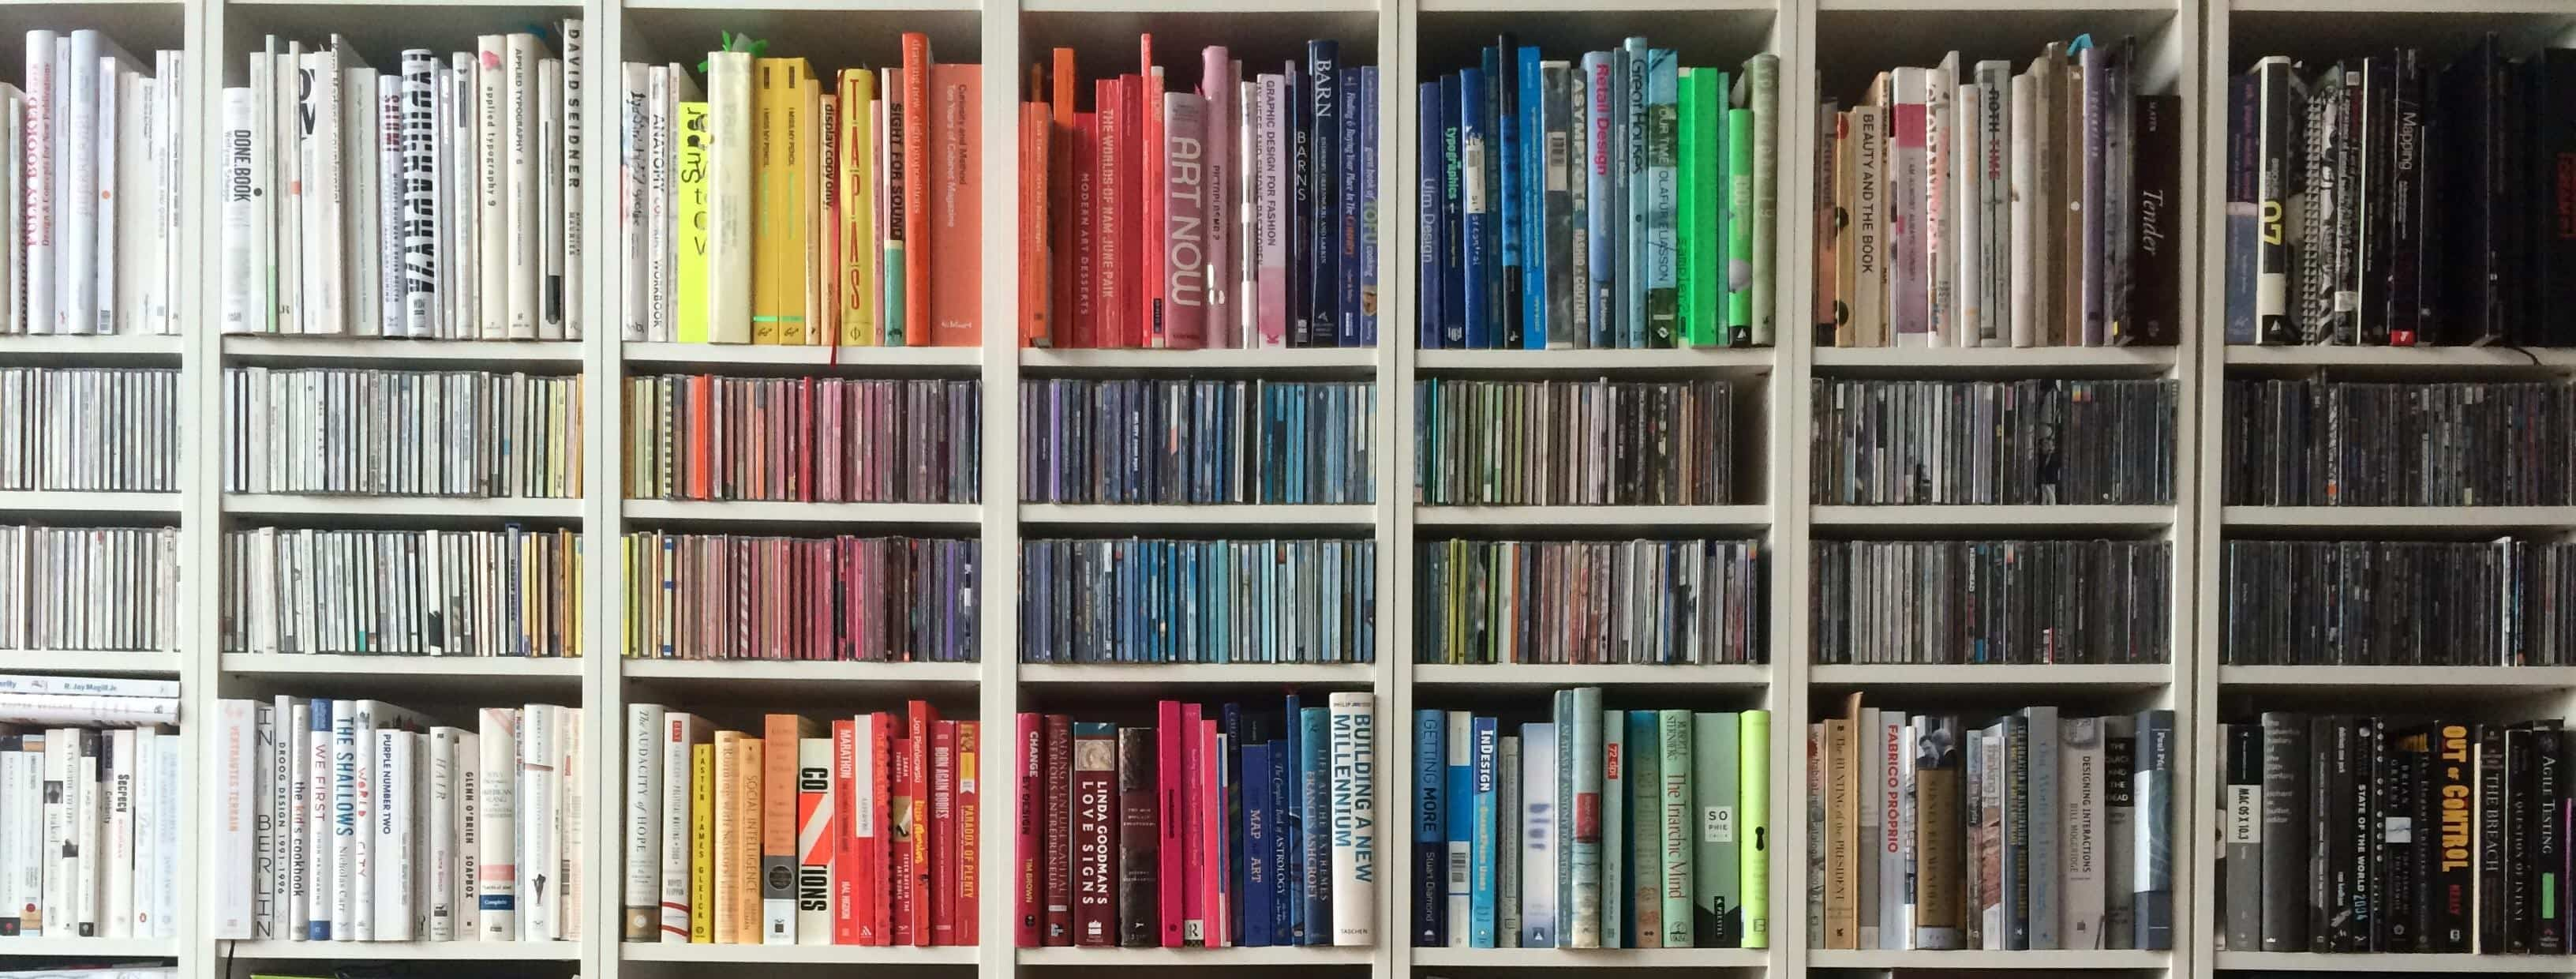 Alt Text: A photograph of a bookshelf with the spines arranged by color from white to yellow to red to blue to green to gray to black. Image via Morguefile, http://mrg.bz/tnqPfm